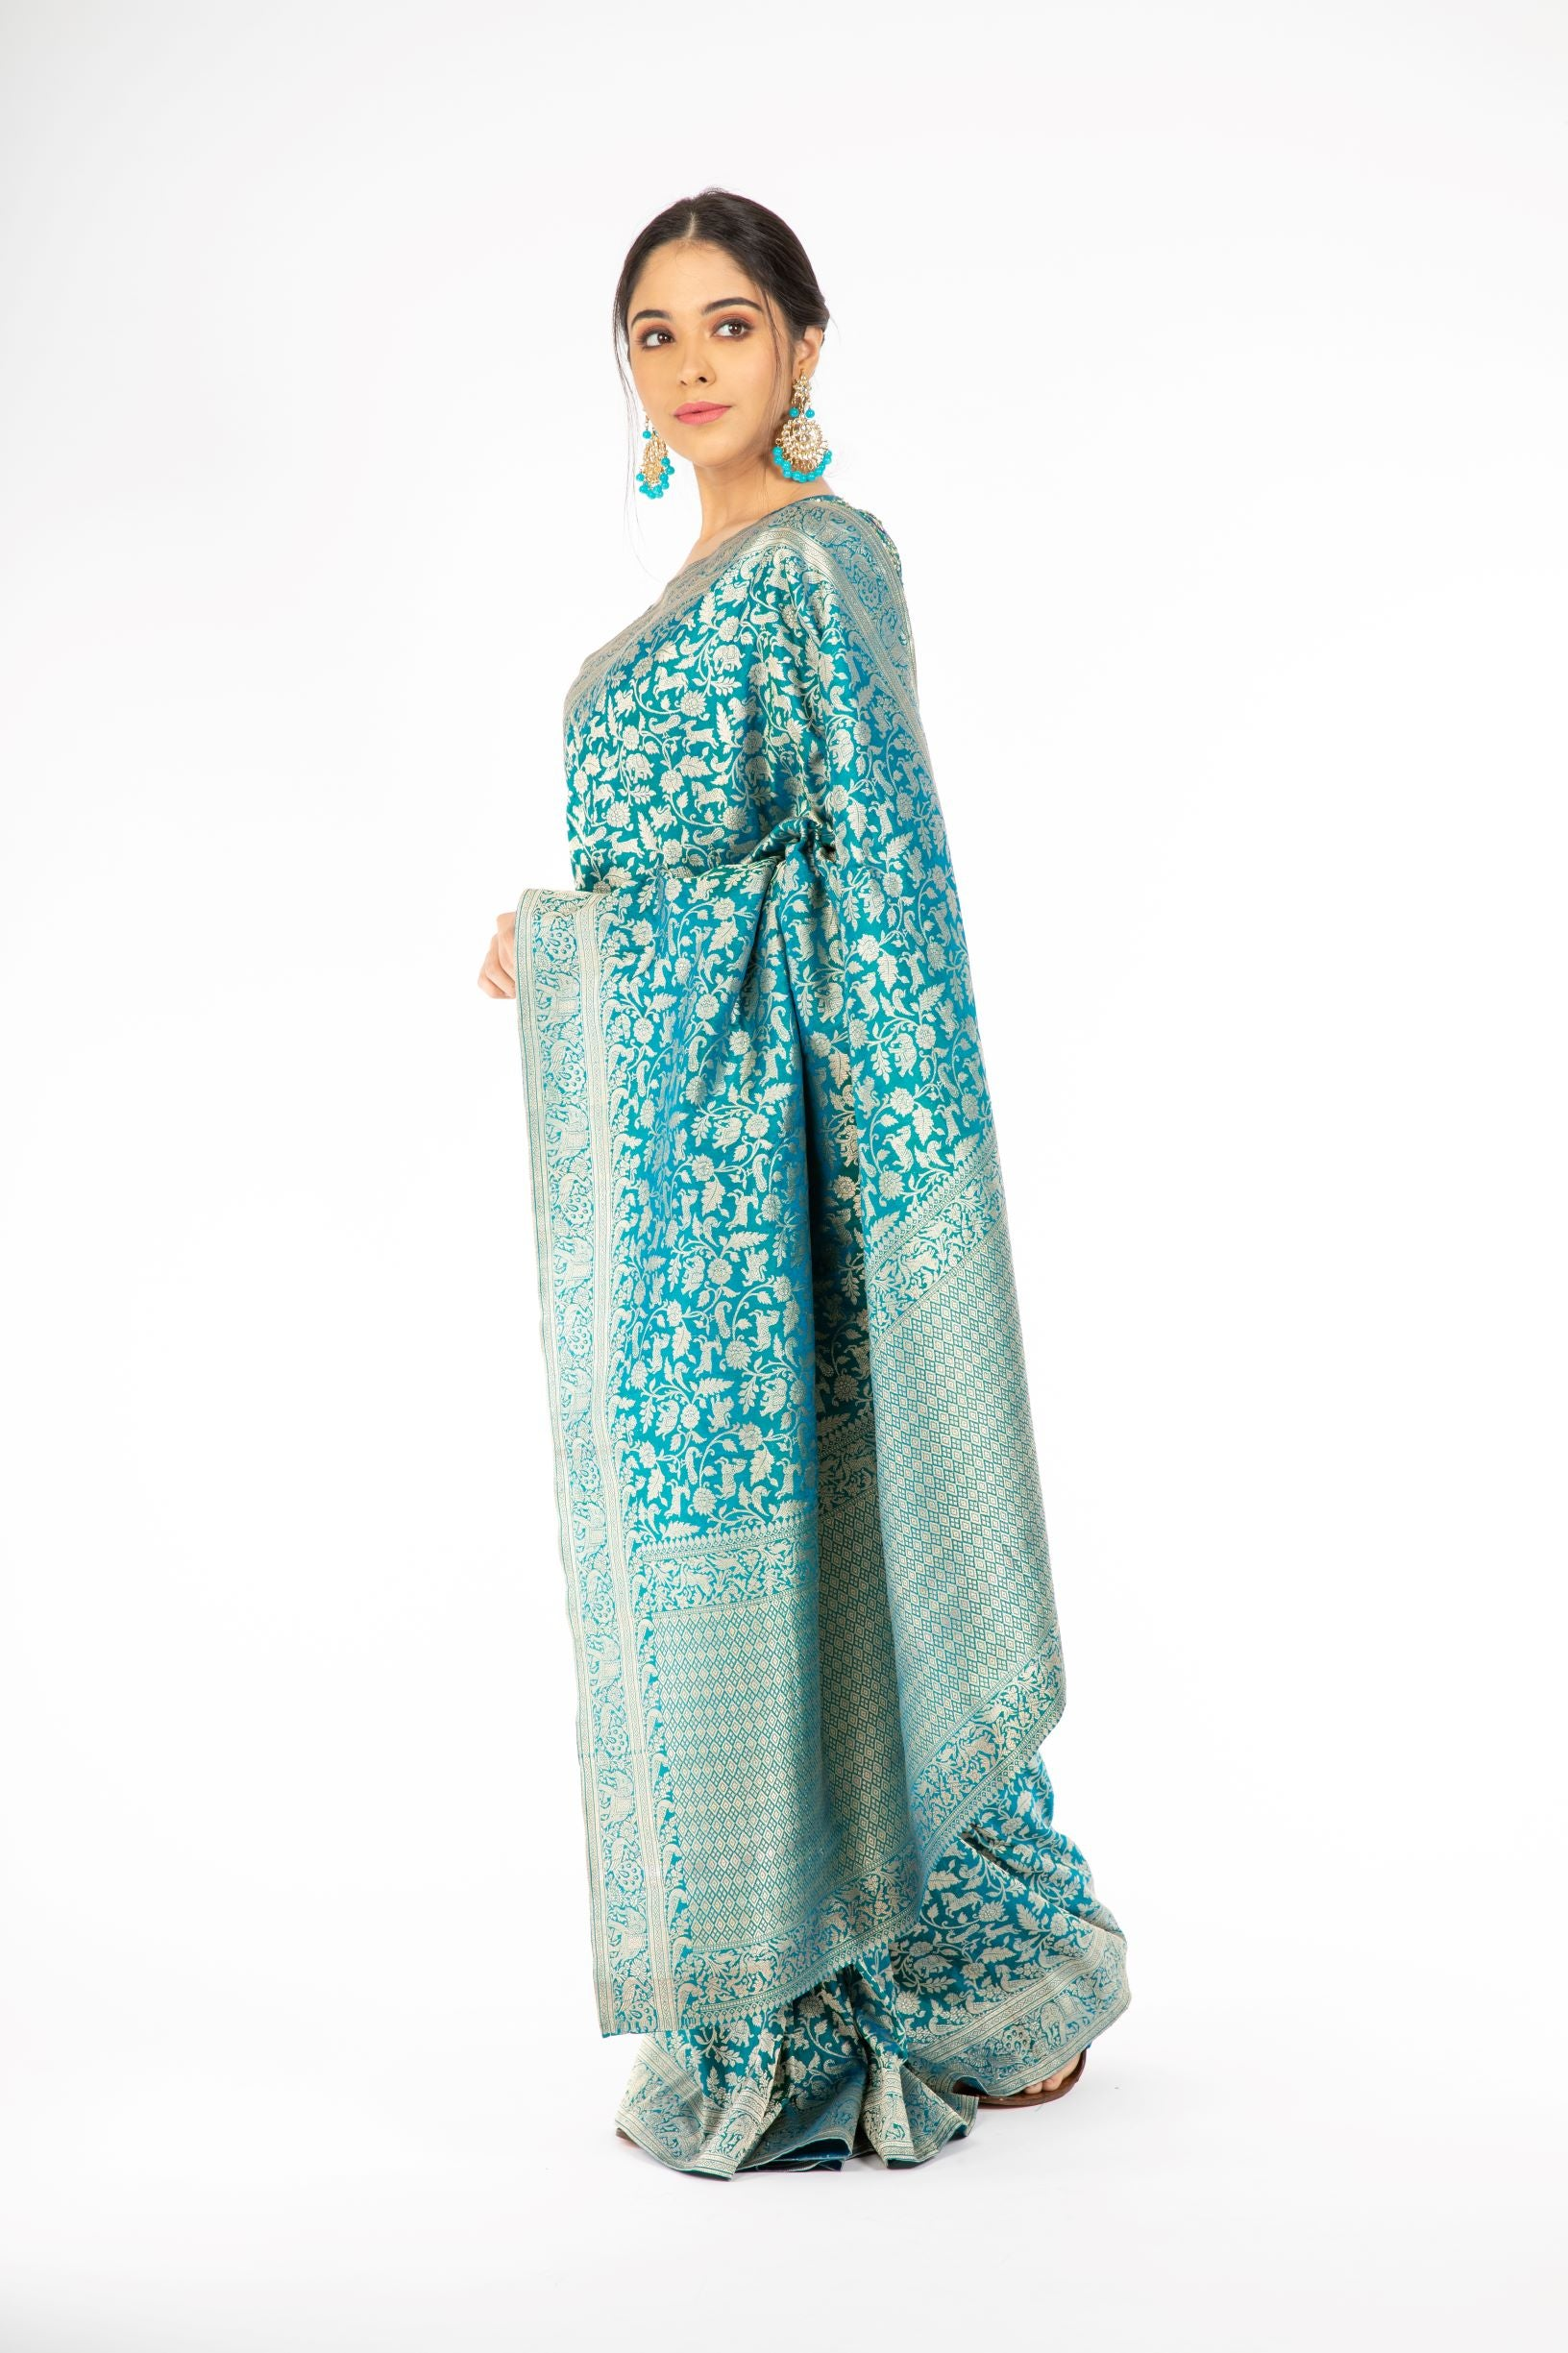 Marvelous Peacock Blue Handloom Banarasi Saree